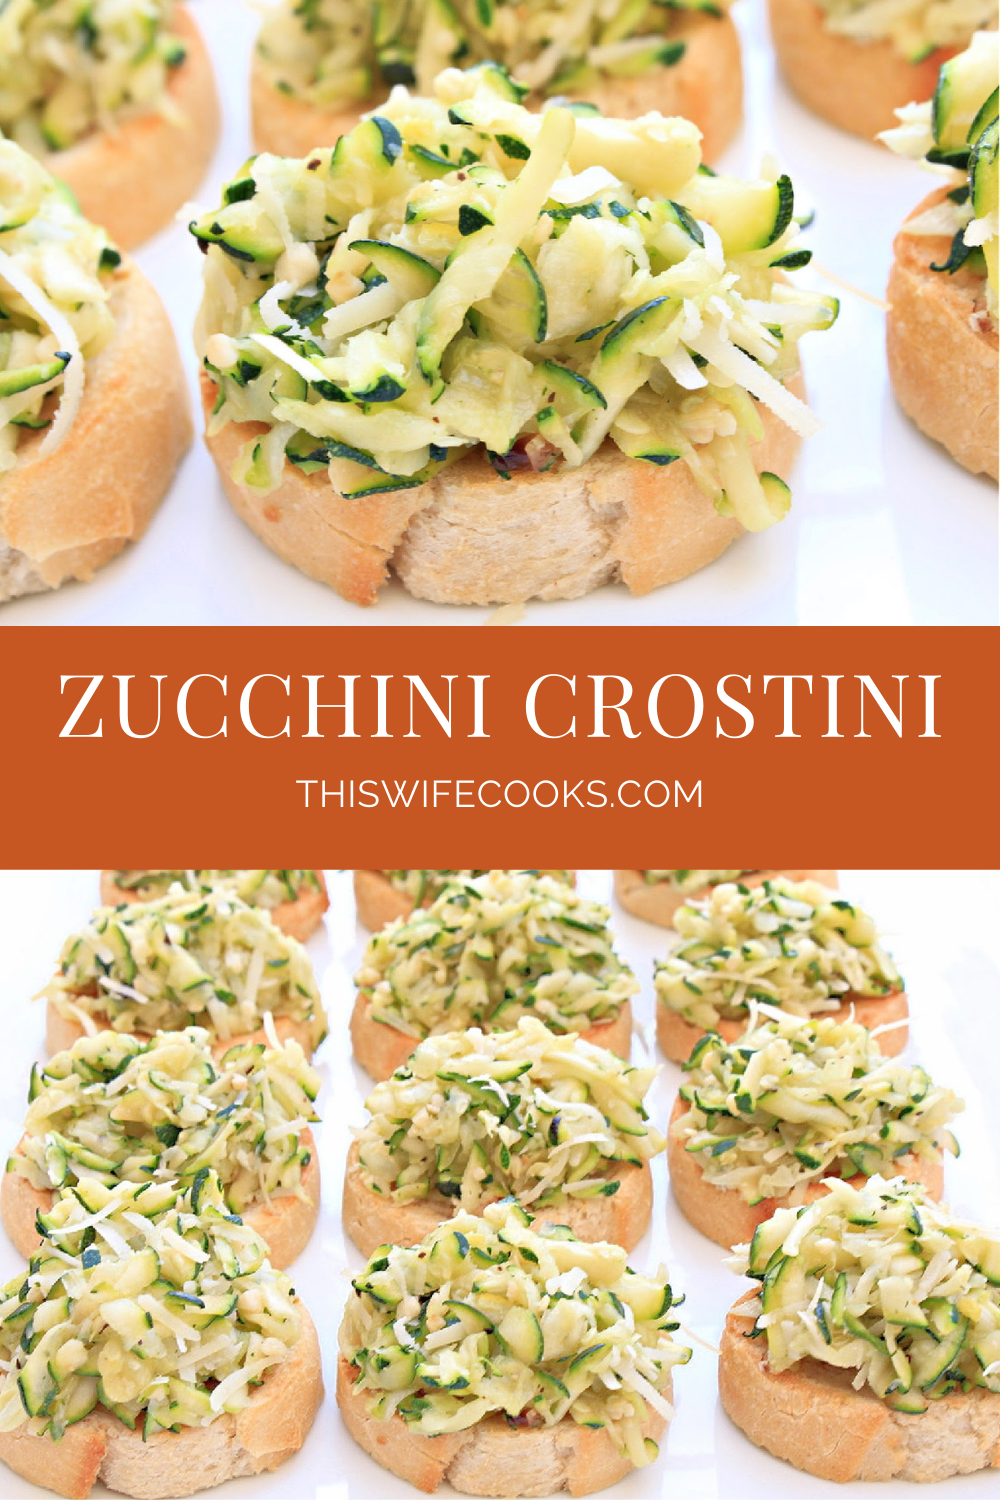 Zucchini Crostini ~ Toasted baguette with an easy bruschetta of grated zucchini, vegan parmesan, garlic and onion, and simple seasonings. Perfect for the warmer months as an appetizer or light meal served outdoors. via @thiswifecooks